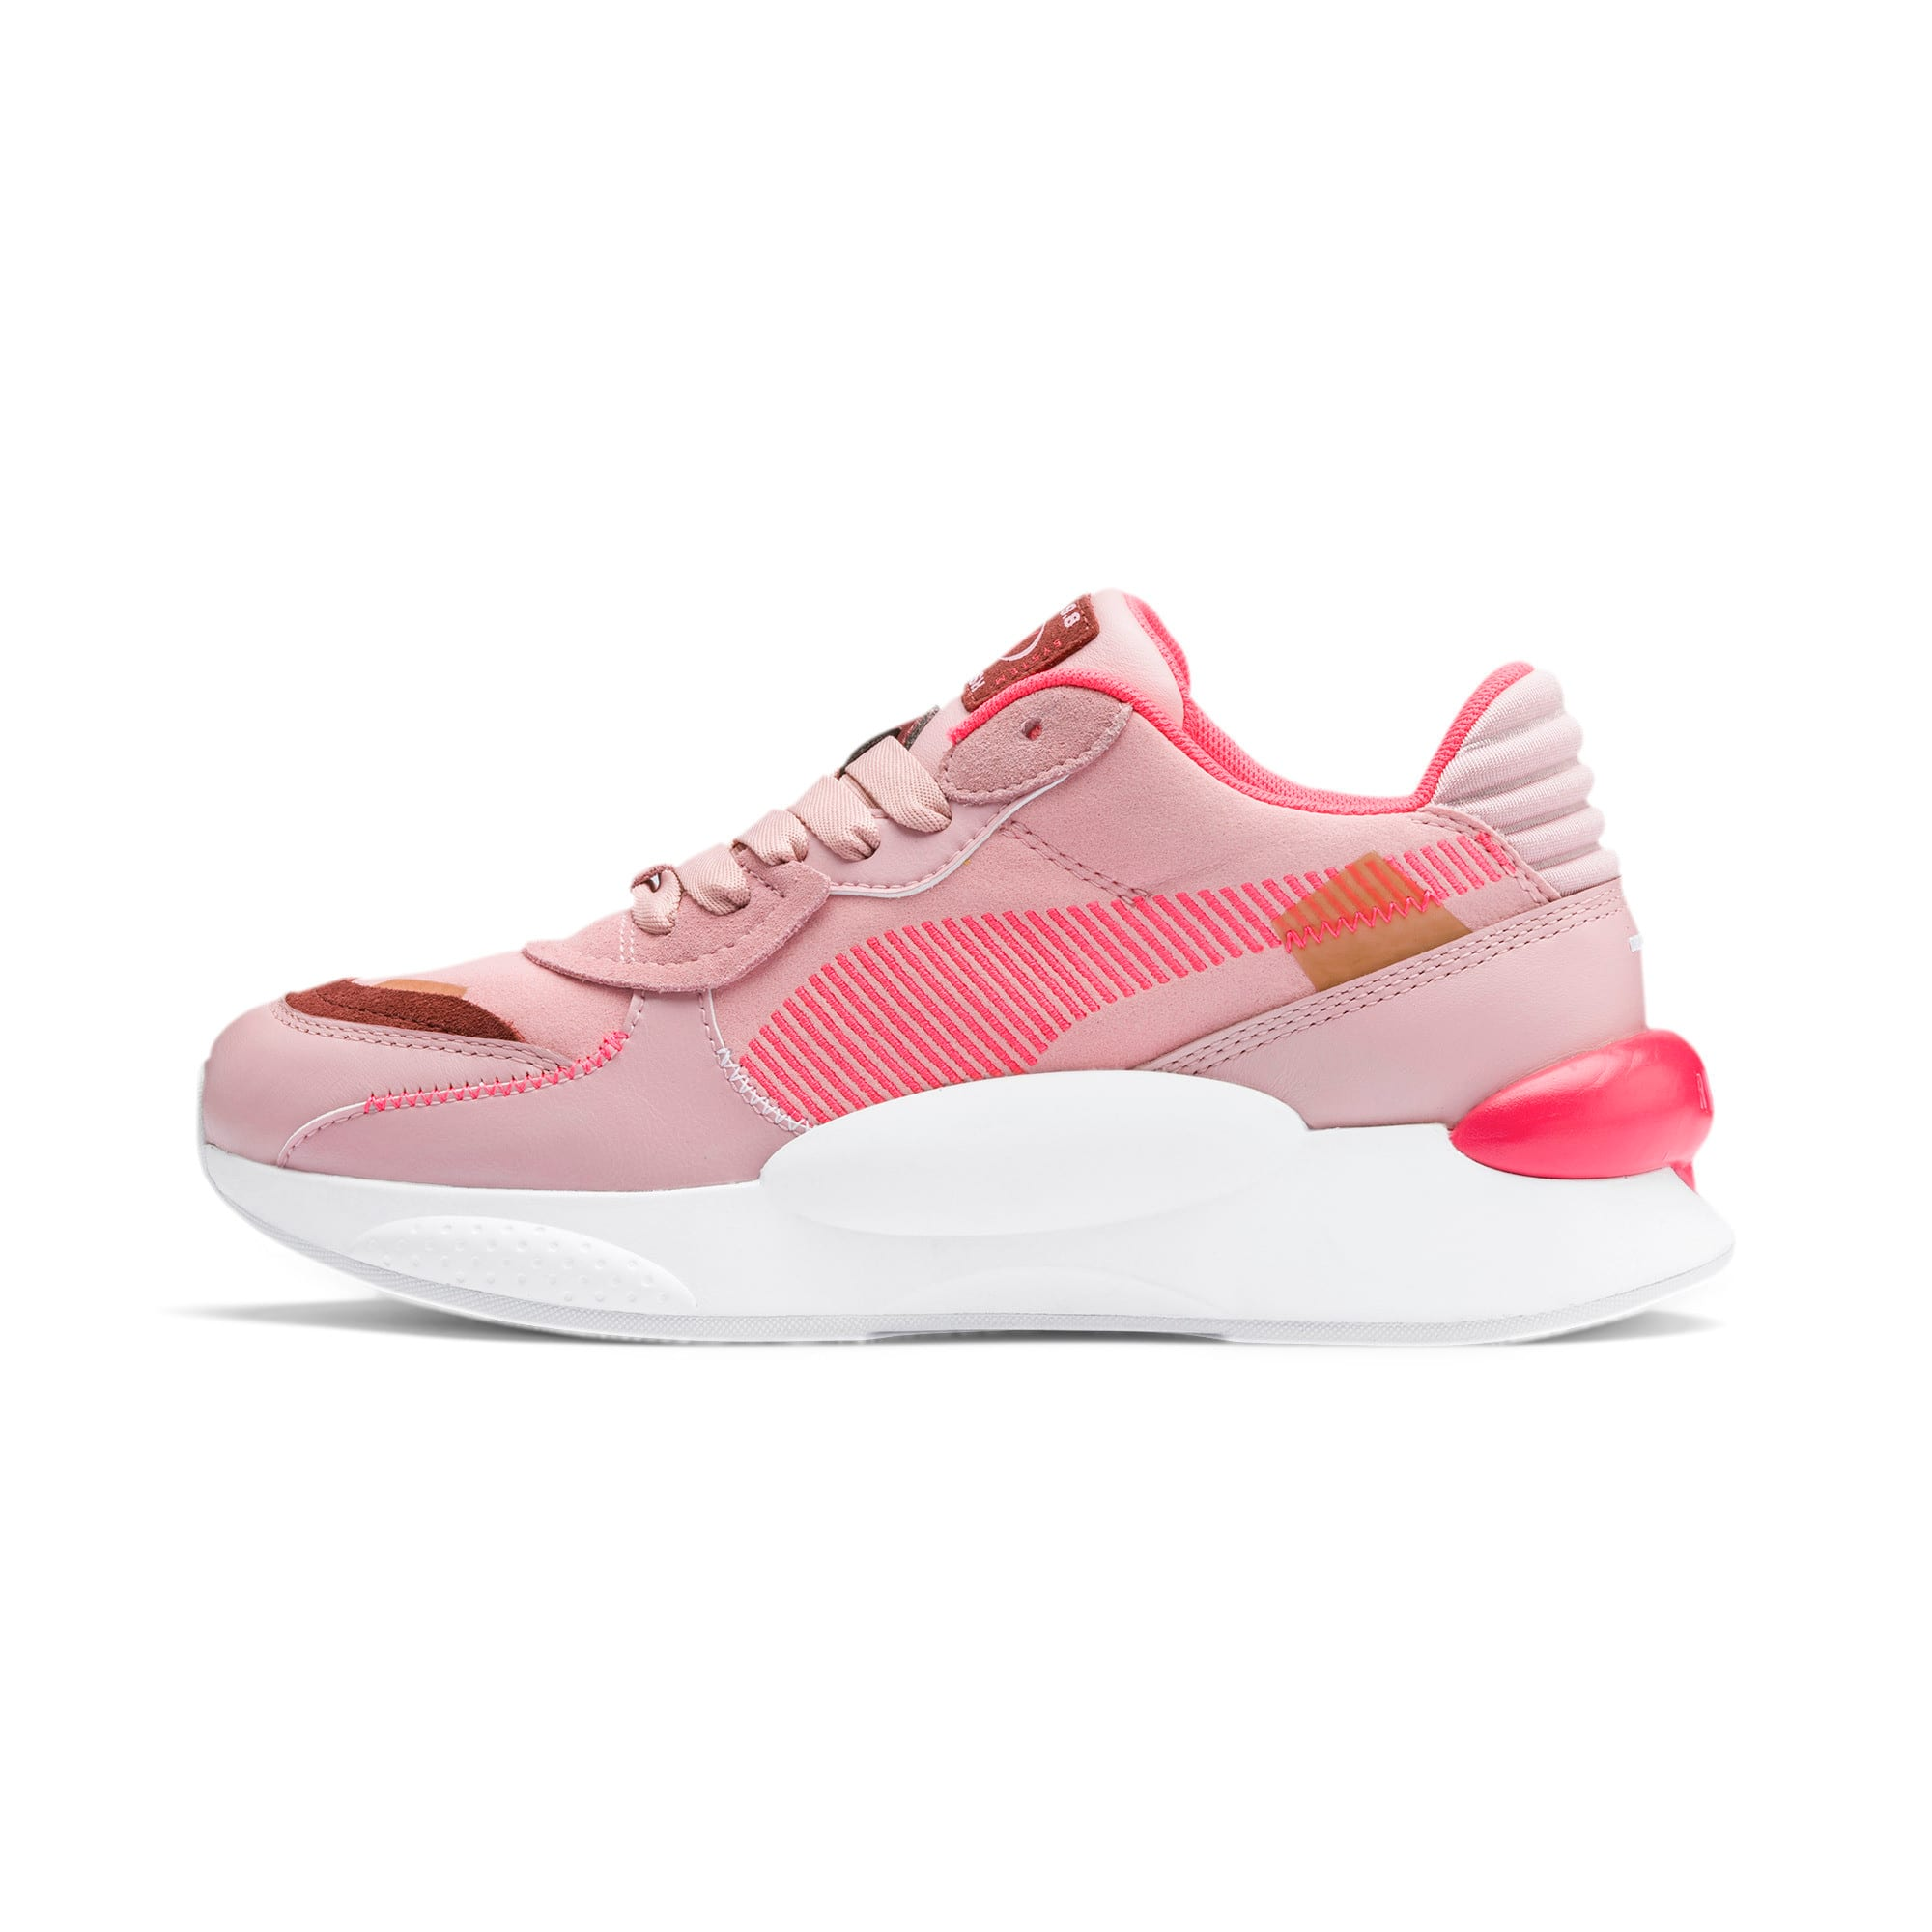 Thumbnail 1 of RS 9.8 Proto Women's Sneakers, Bridal Rose, medium